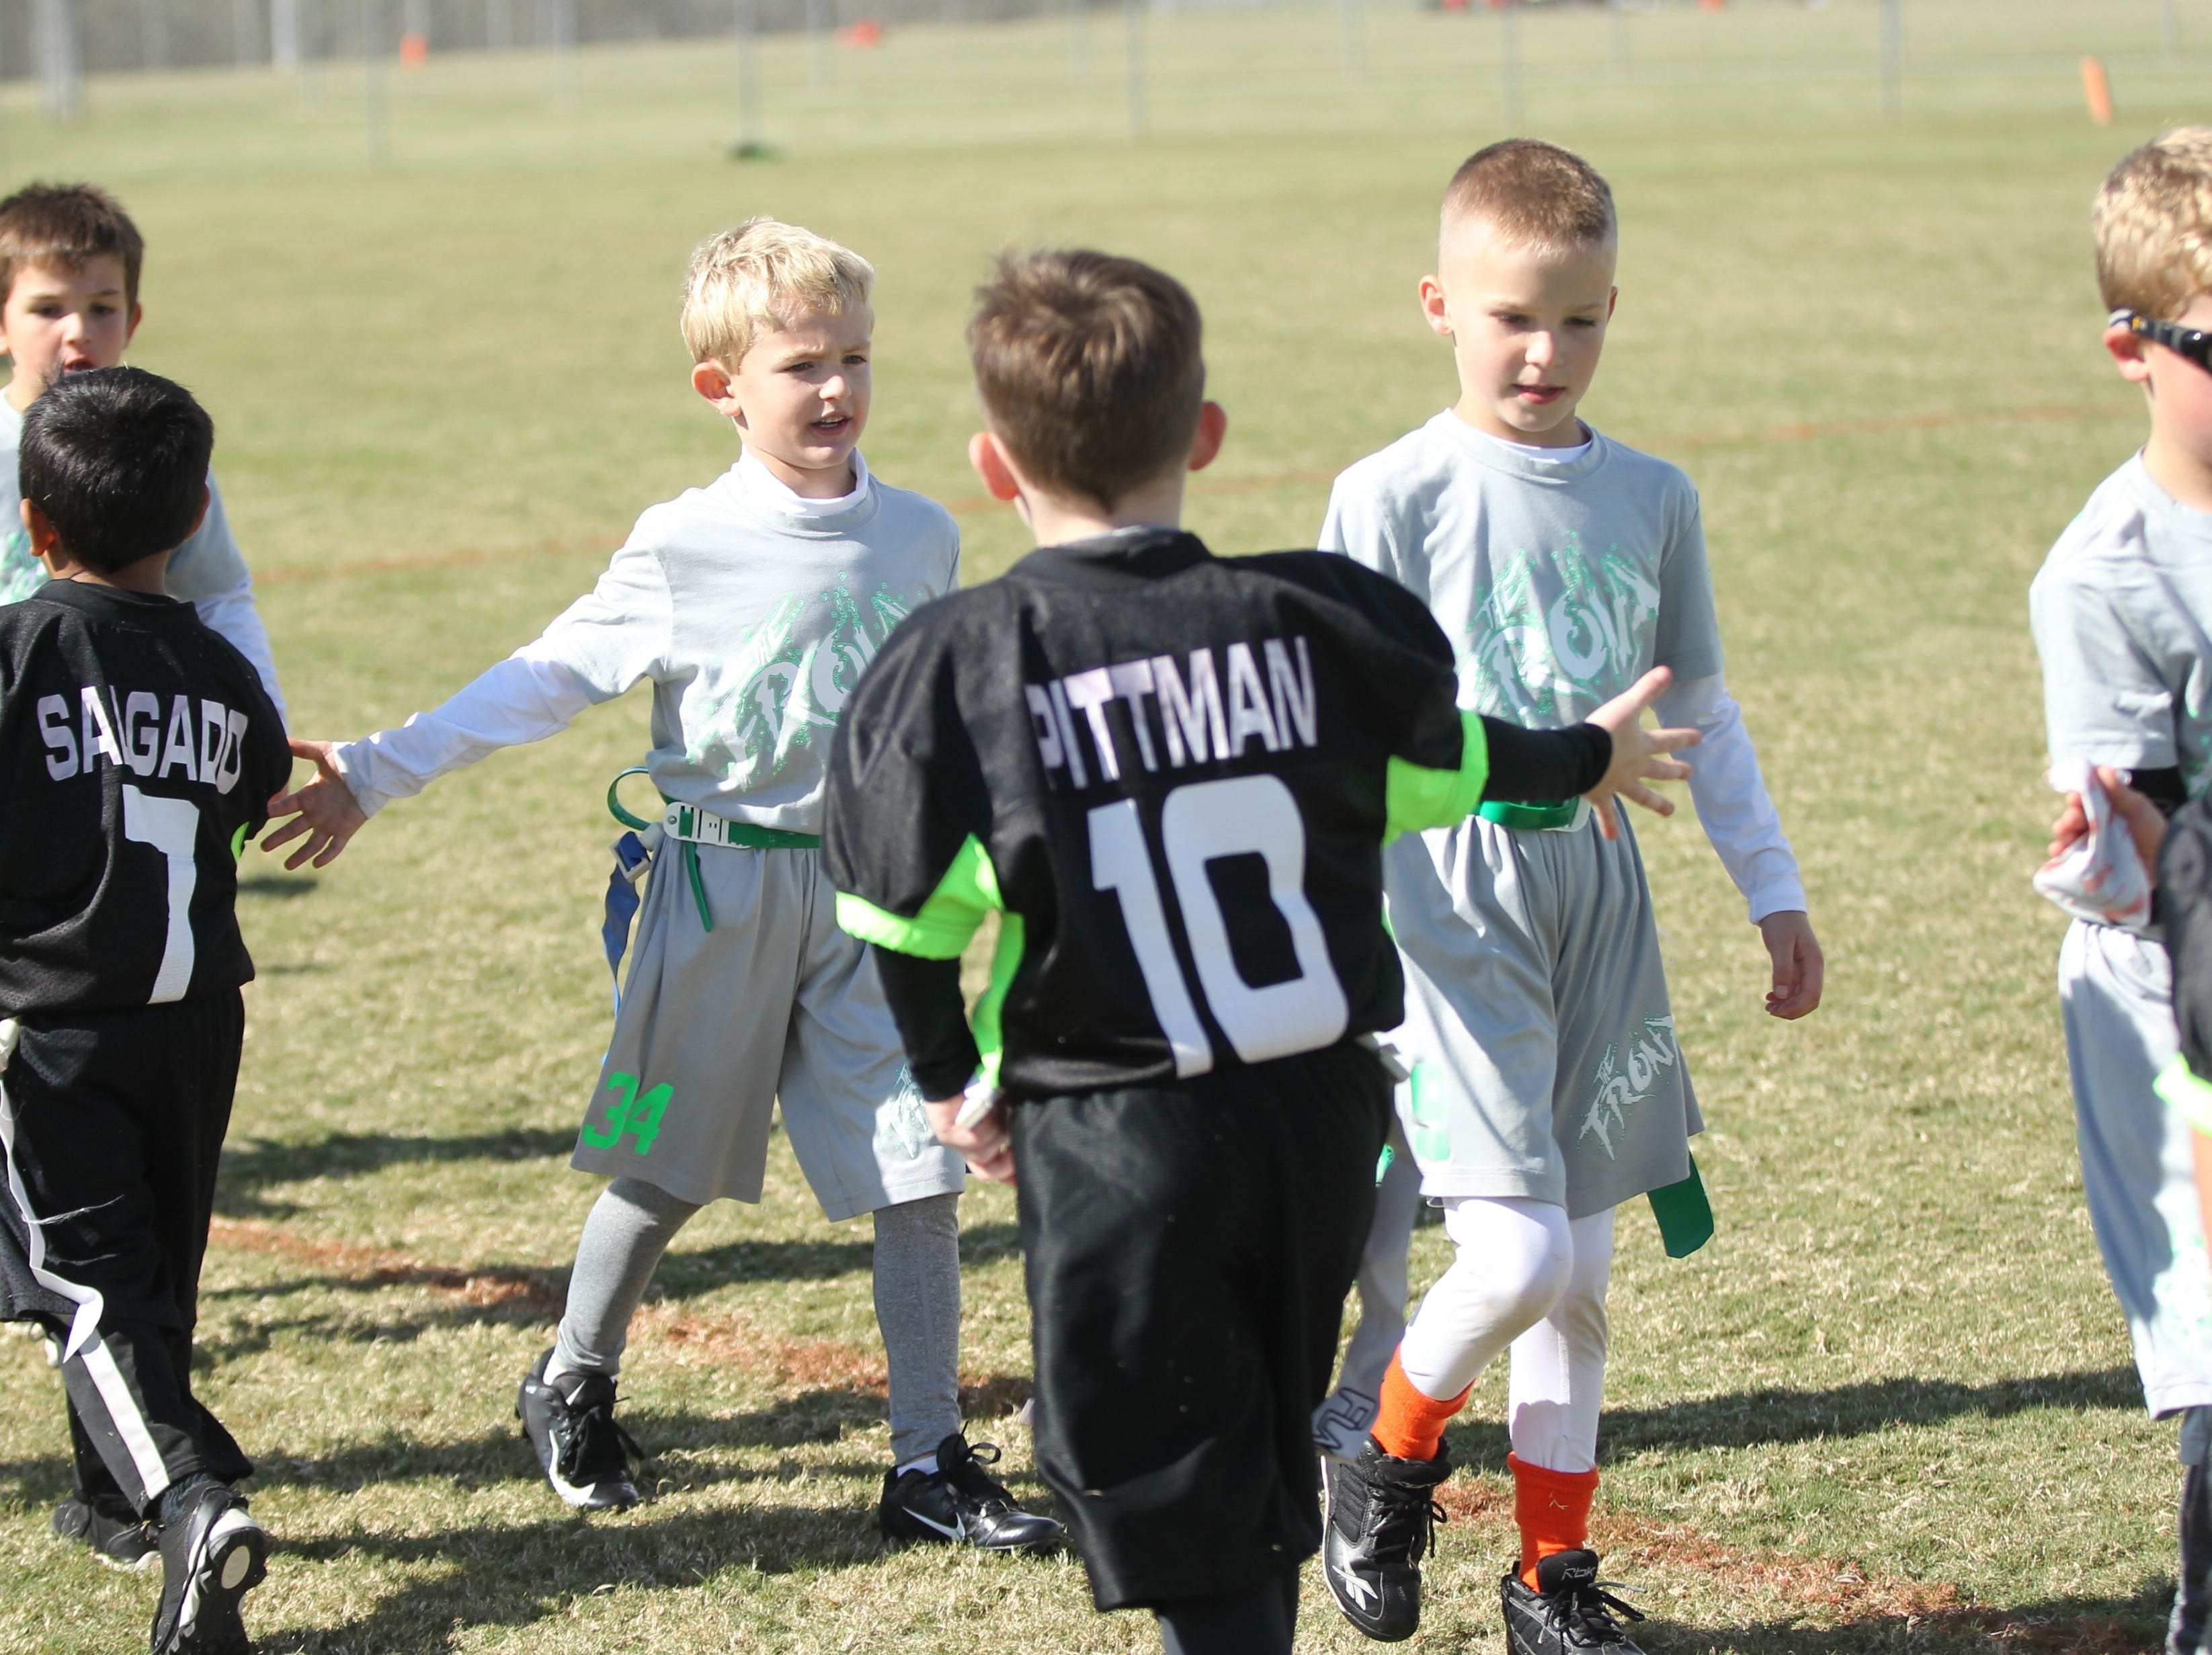 Players for The Front and the San Angelo Seahawks (black uniforms) congratulate each other for a good contest after the championship game of the 6u TAAF State Youth Flag Football Tournament at the Texas Bank Sports Complex on Sunday, Nov. 11, 2018. The Front won a defensive battle 13-0.